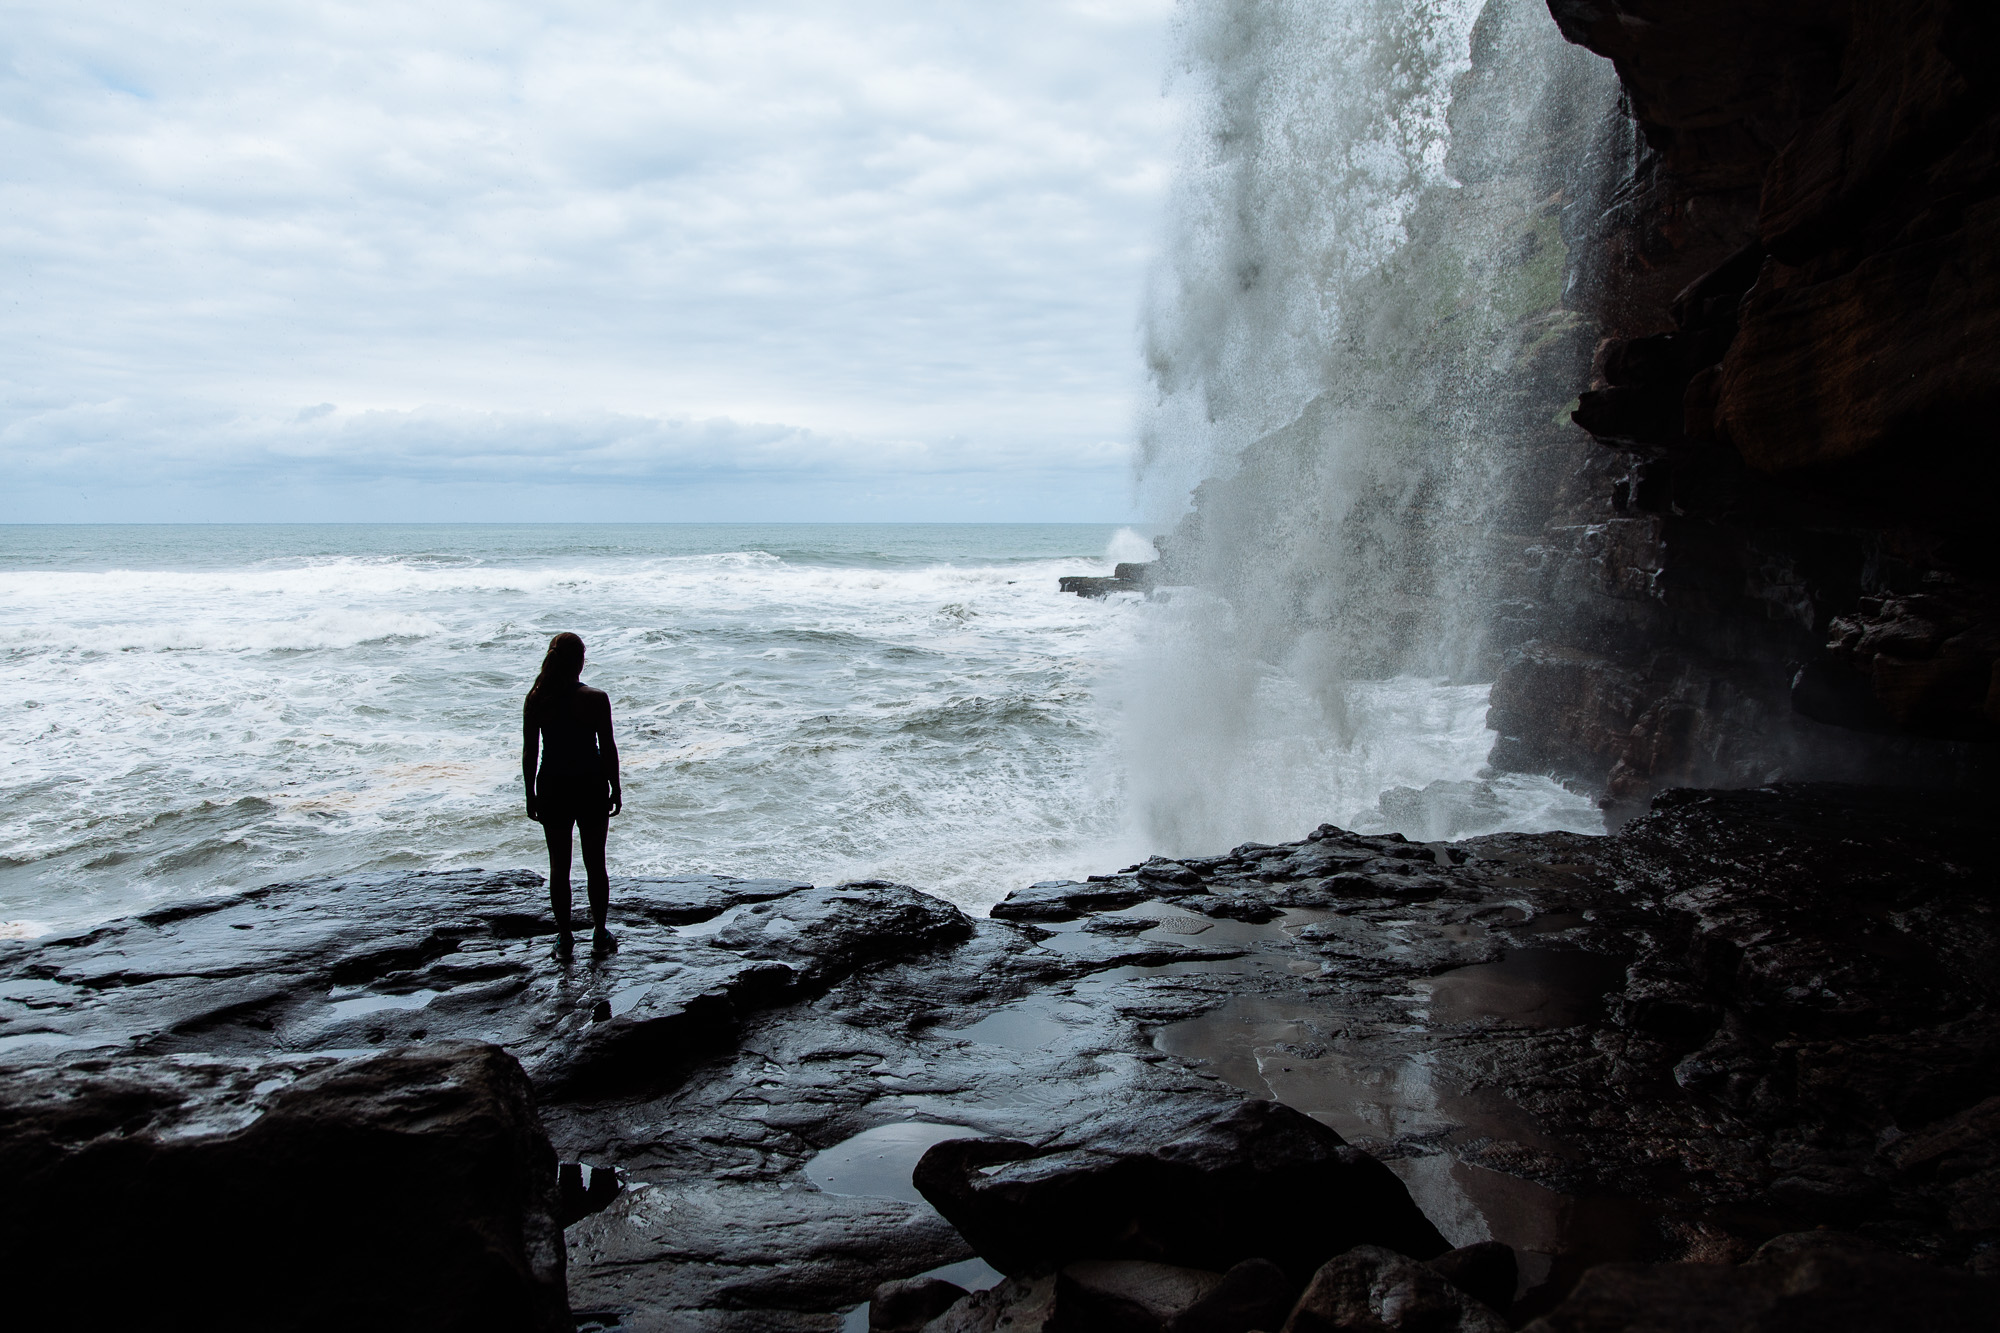 Standing underneath Waterfall Bluff, one of the many waterfalls along The WIld Coast that drops straight into the ocean.